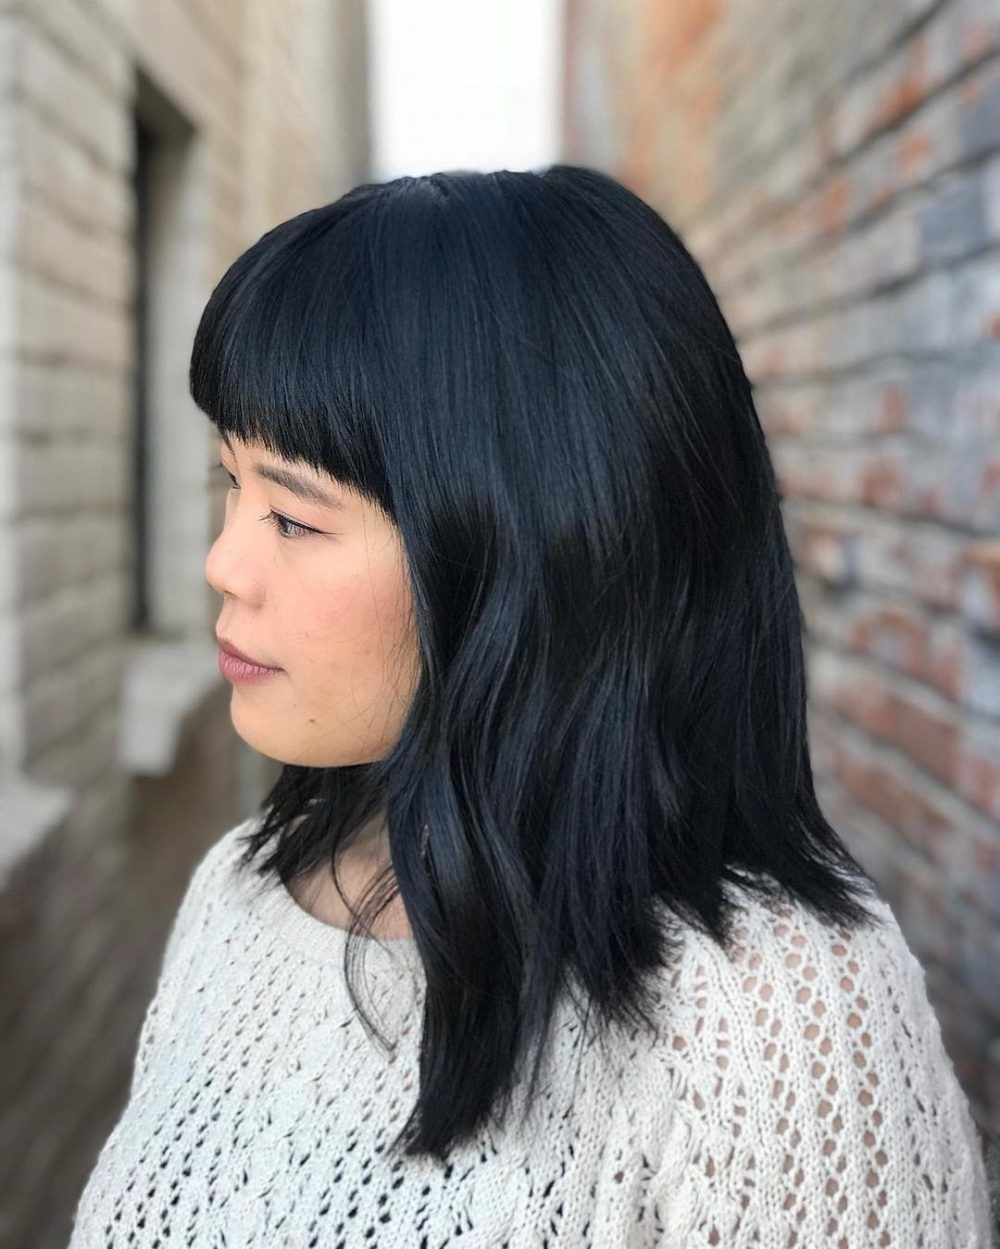 53 Medium Hairstyles With Bangs: Our Latest Faves! | Medium 10+ Stunning Medium Black Hairstyles With Bangs